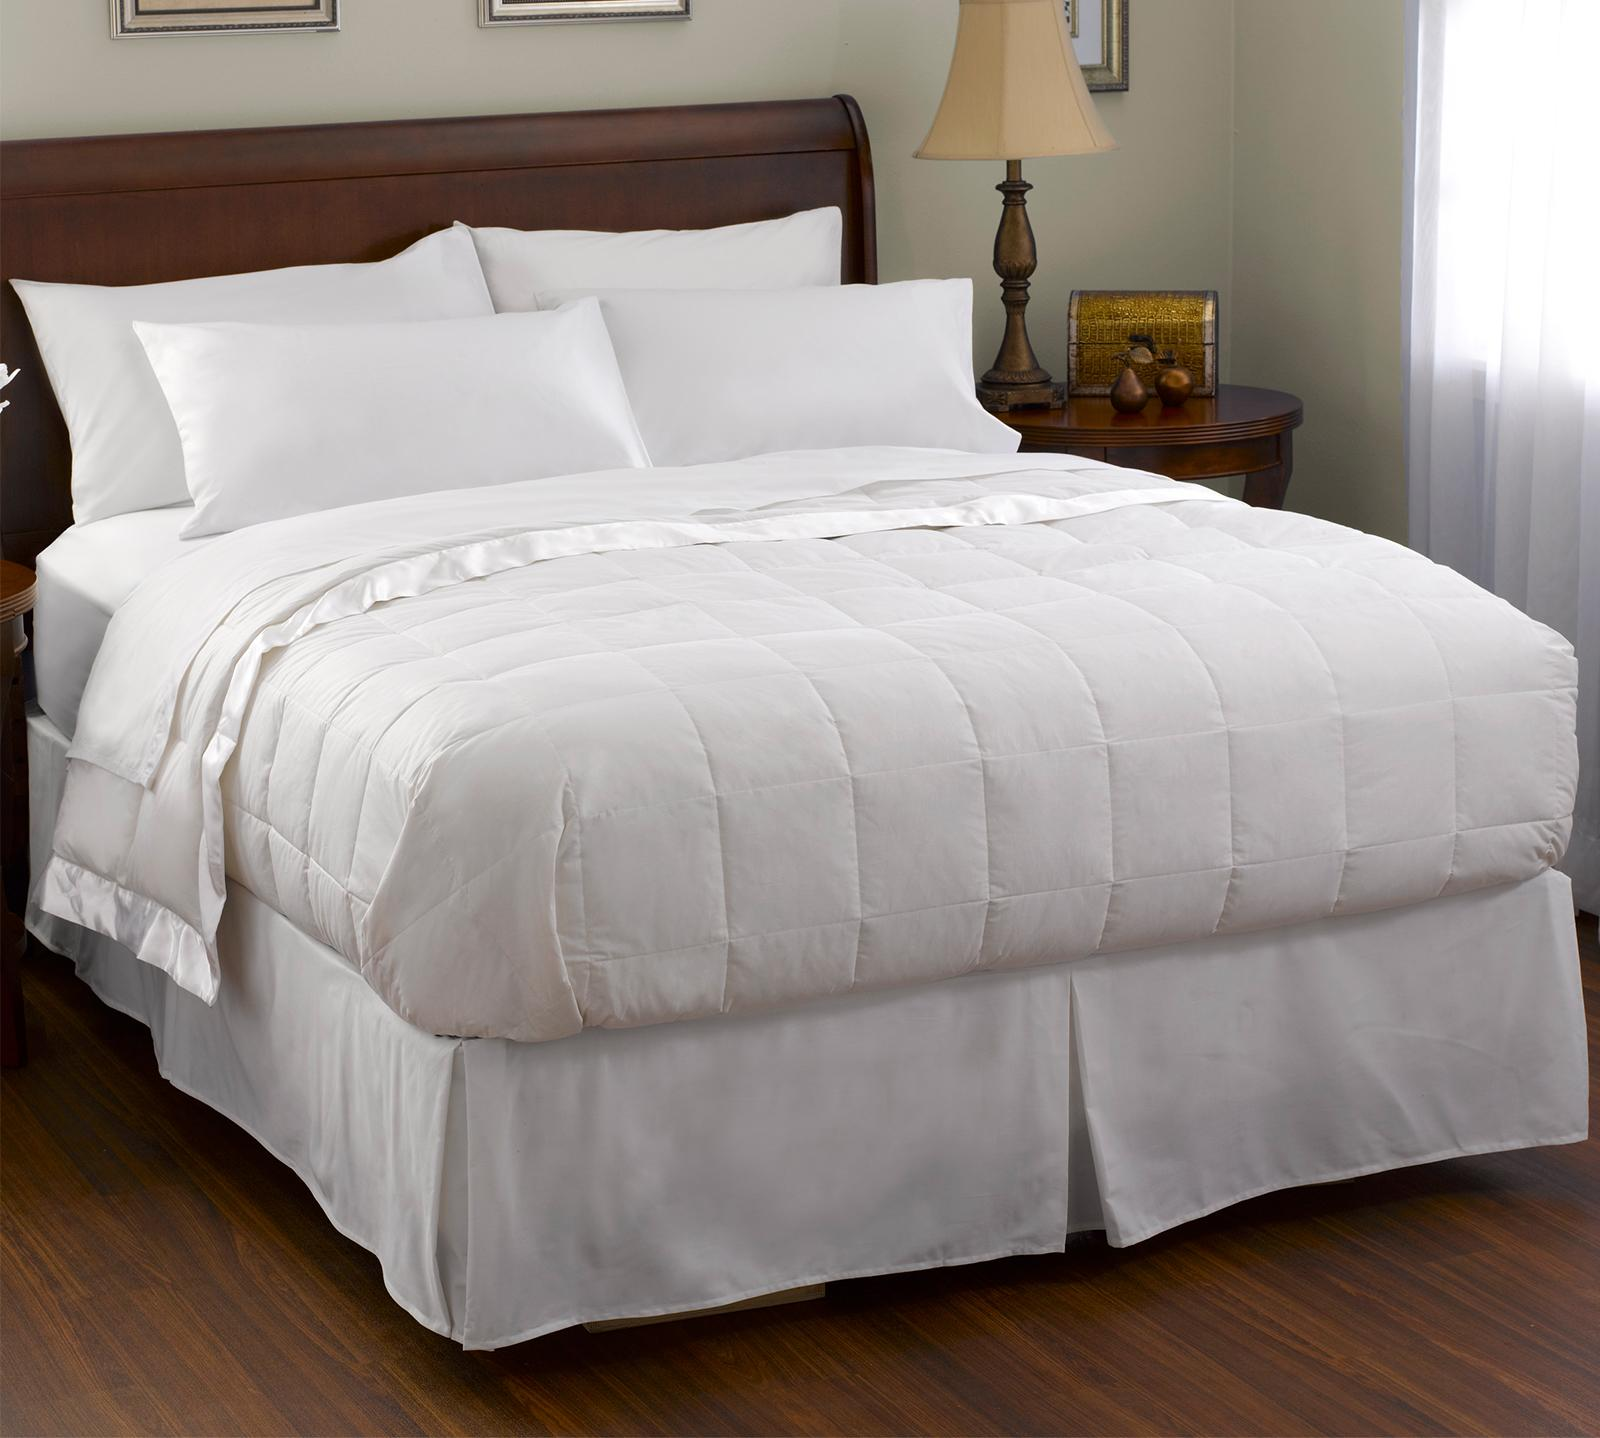 Pacific Coast Feather Twin Radiance Down Blanket